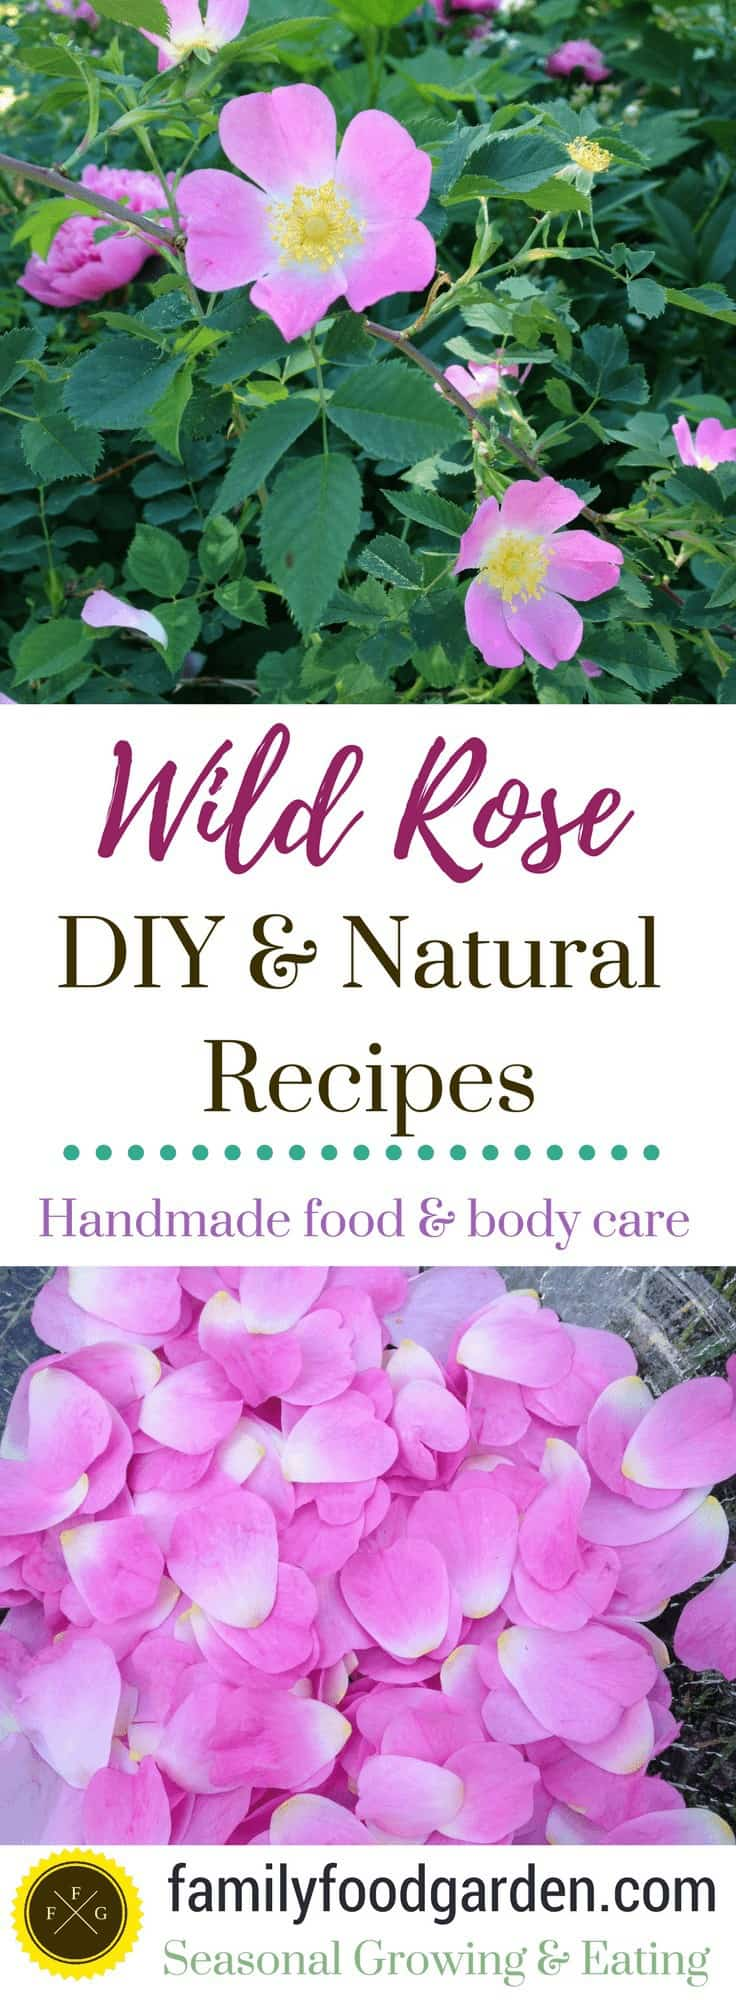 Rose petal recipes